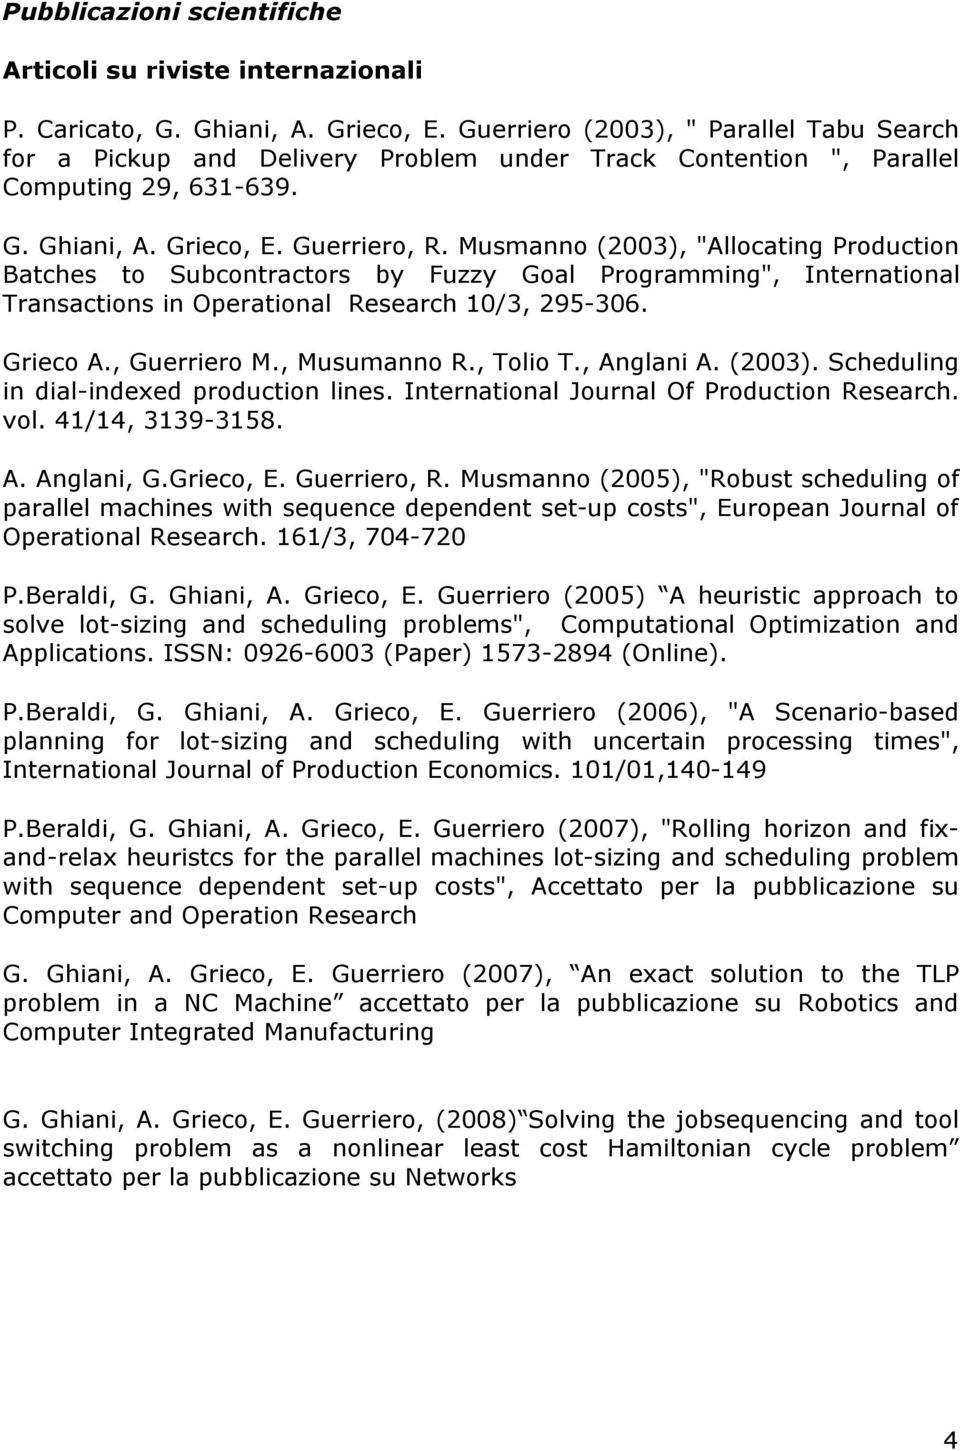 "Musmanno (2003), ""Allocating Production Batches to Subcontractors by Fuzzy Goal Programming"", International Transactions in Operational Research 10/3, 295-306. Grieco A., Guerriero M., Musumanno R."